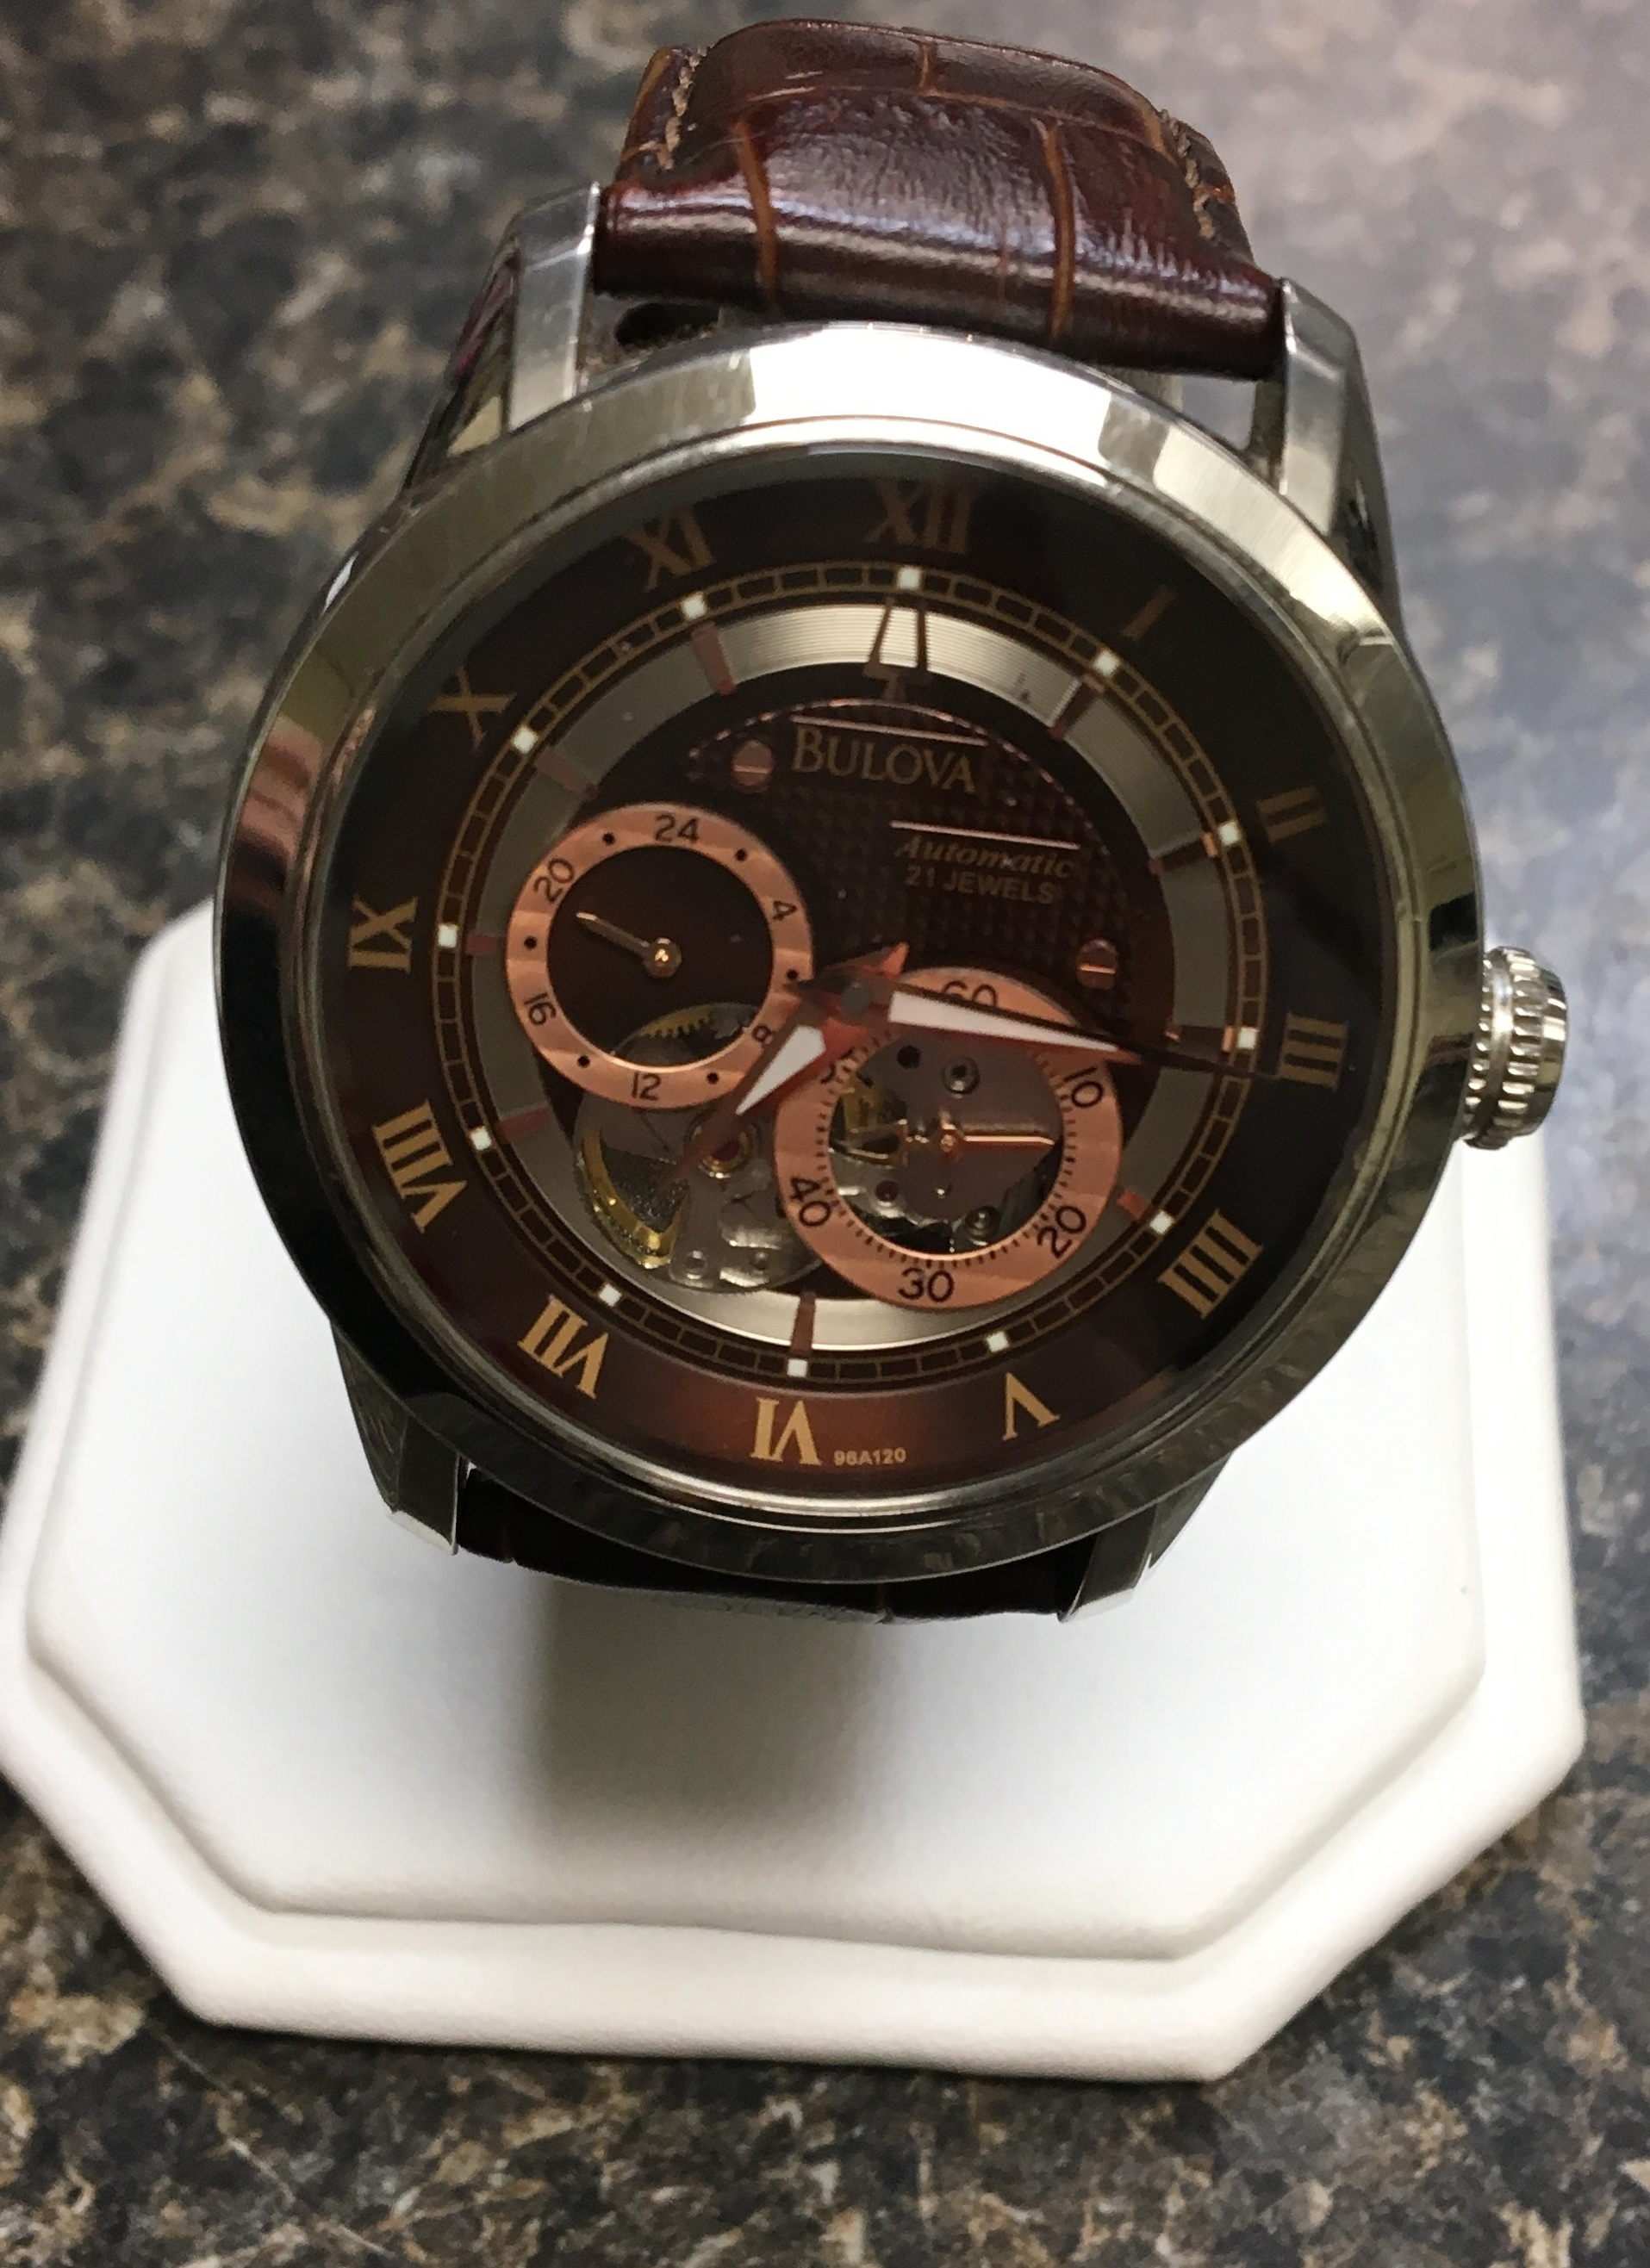 STAINLESS STEEL BULOVA WATCH. 0.01 DWT